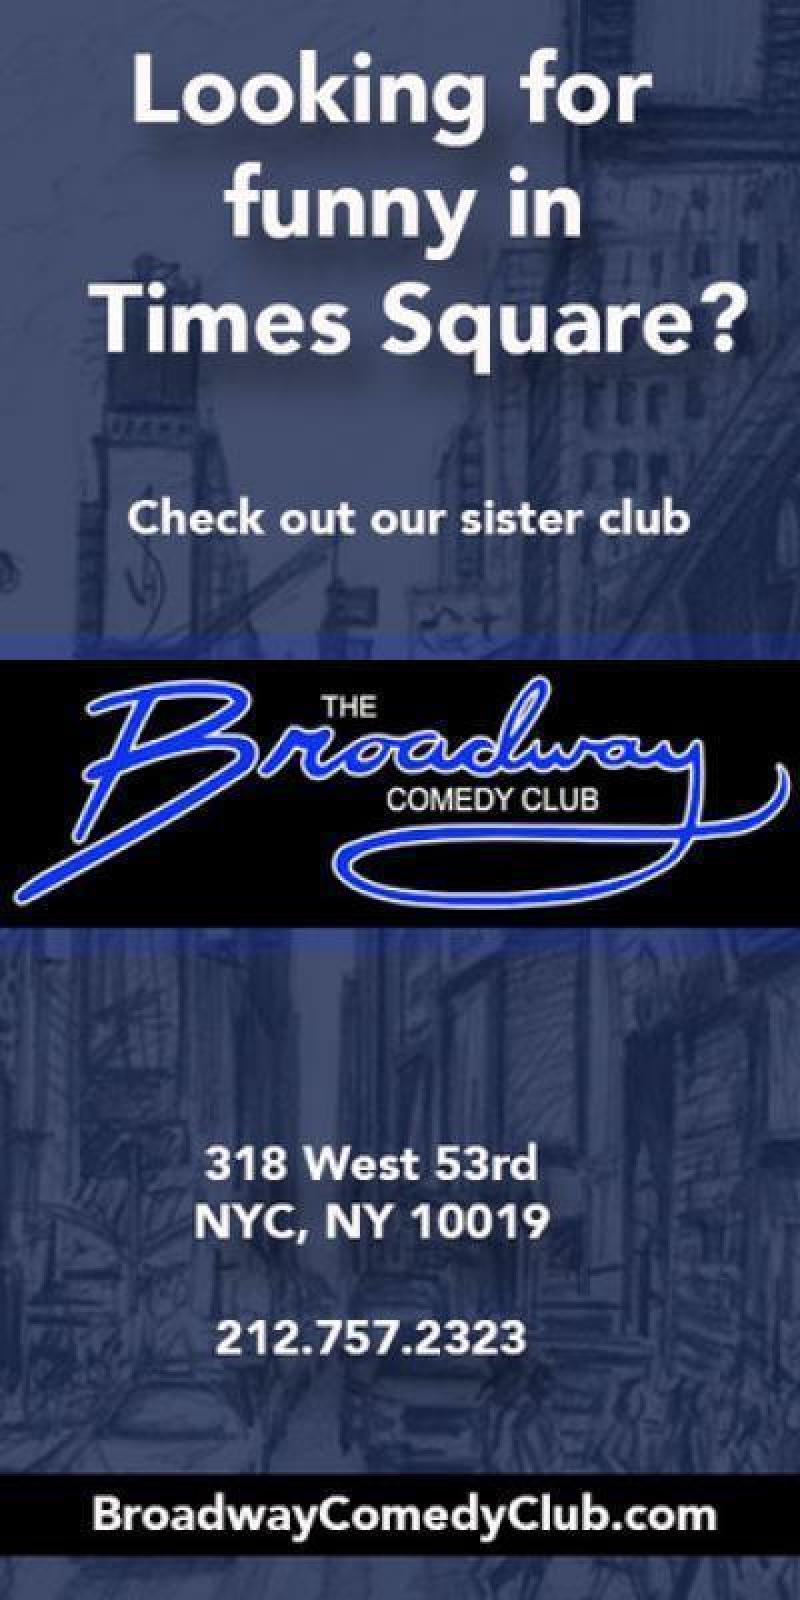 https://www.broadwaycomedyclub.com/